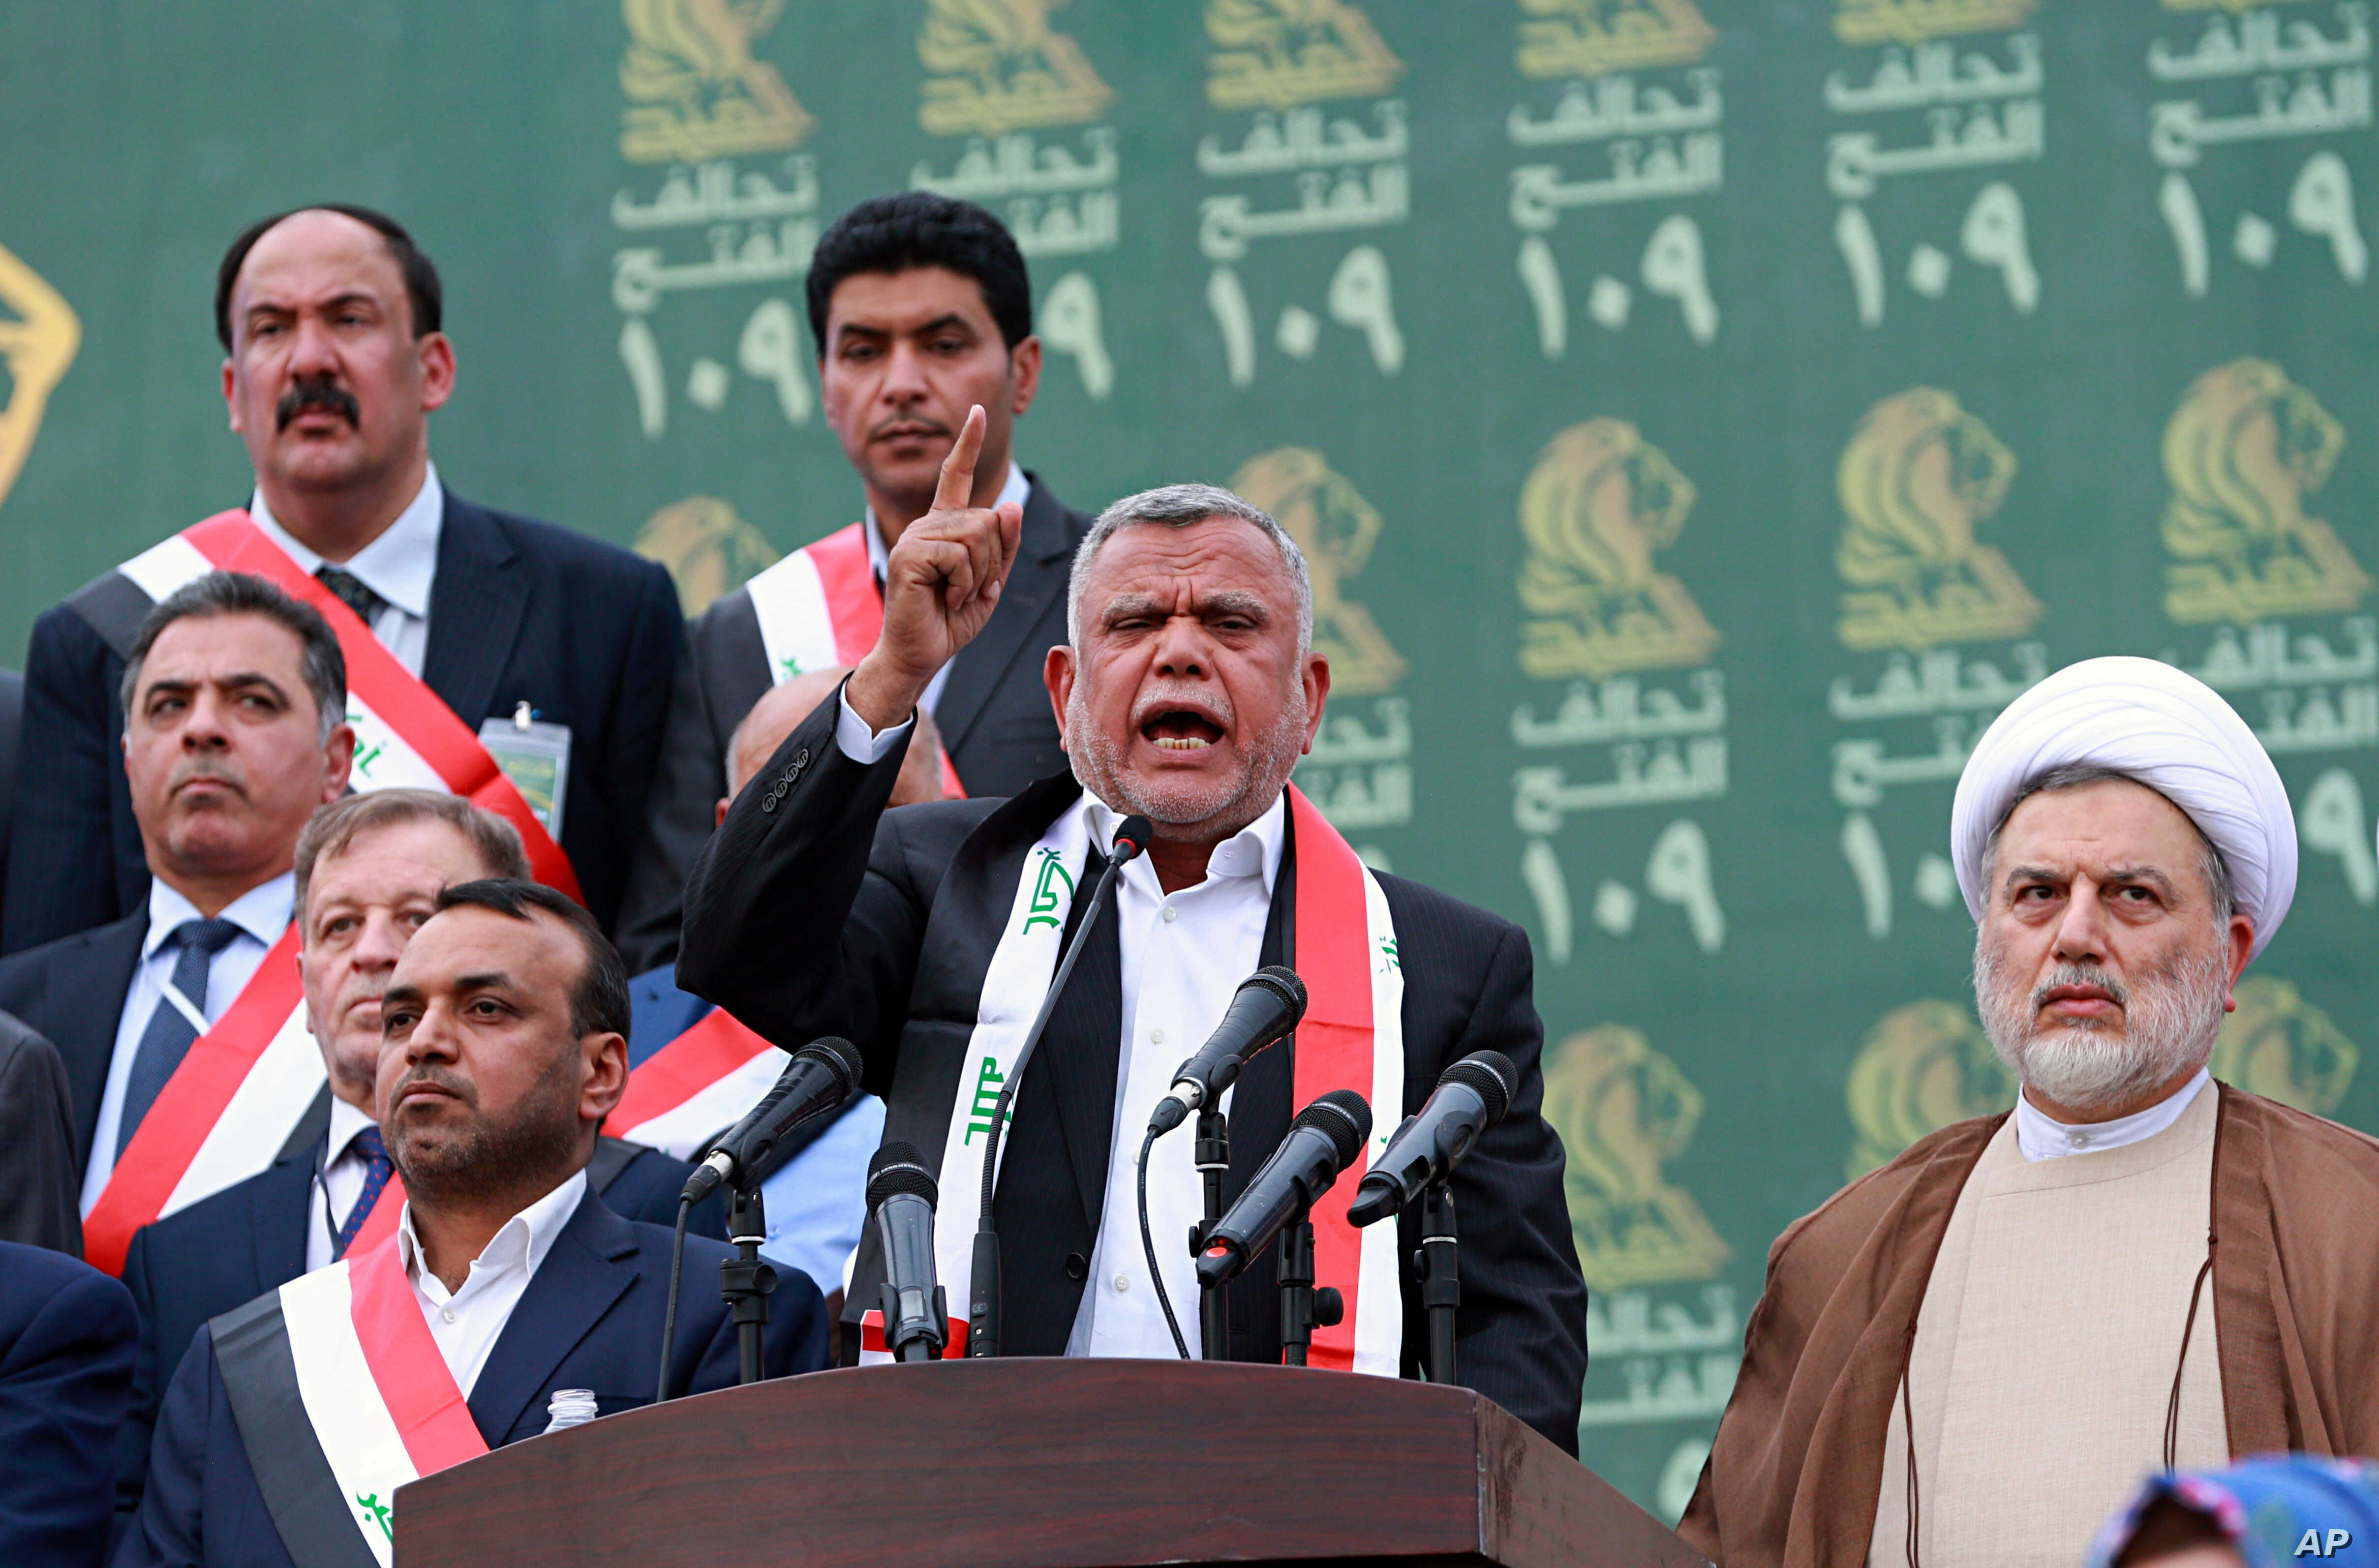 FILE - Hadi al-Amiri, center, speaks to his followers during his political block campaign rally in Baghdad, Iraq, May 7, 2018.